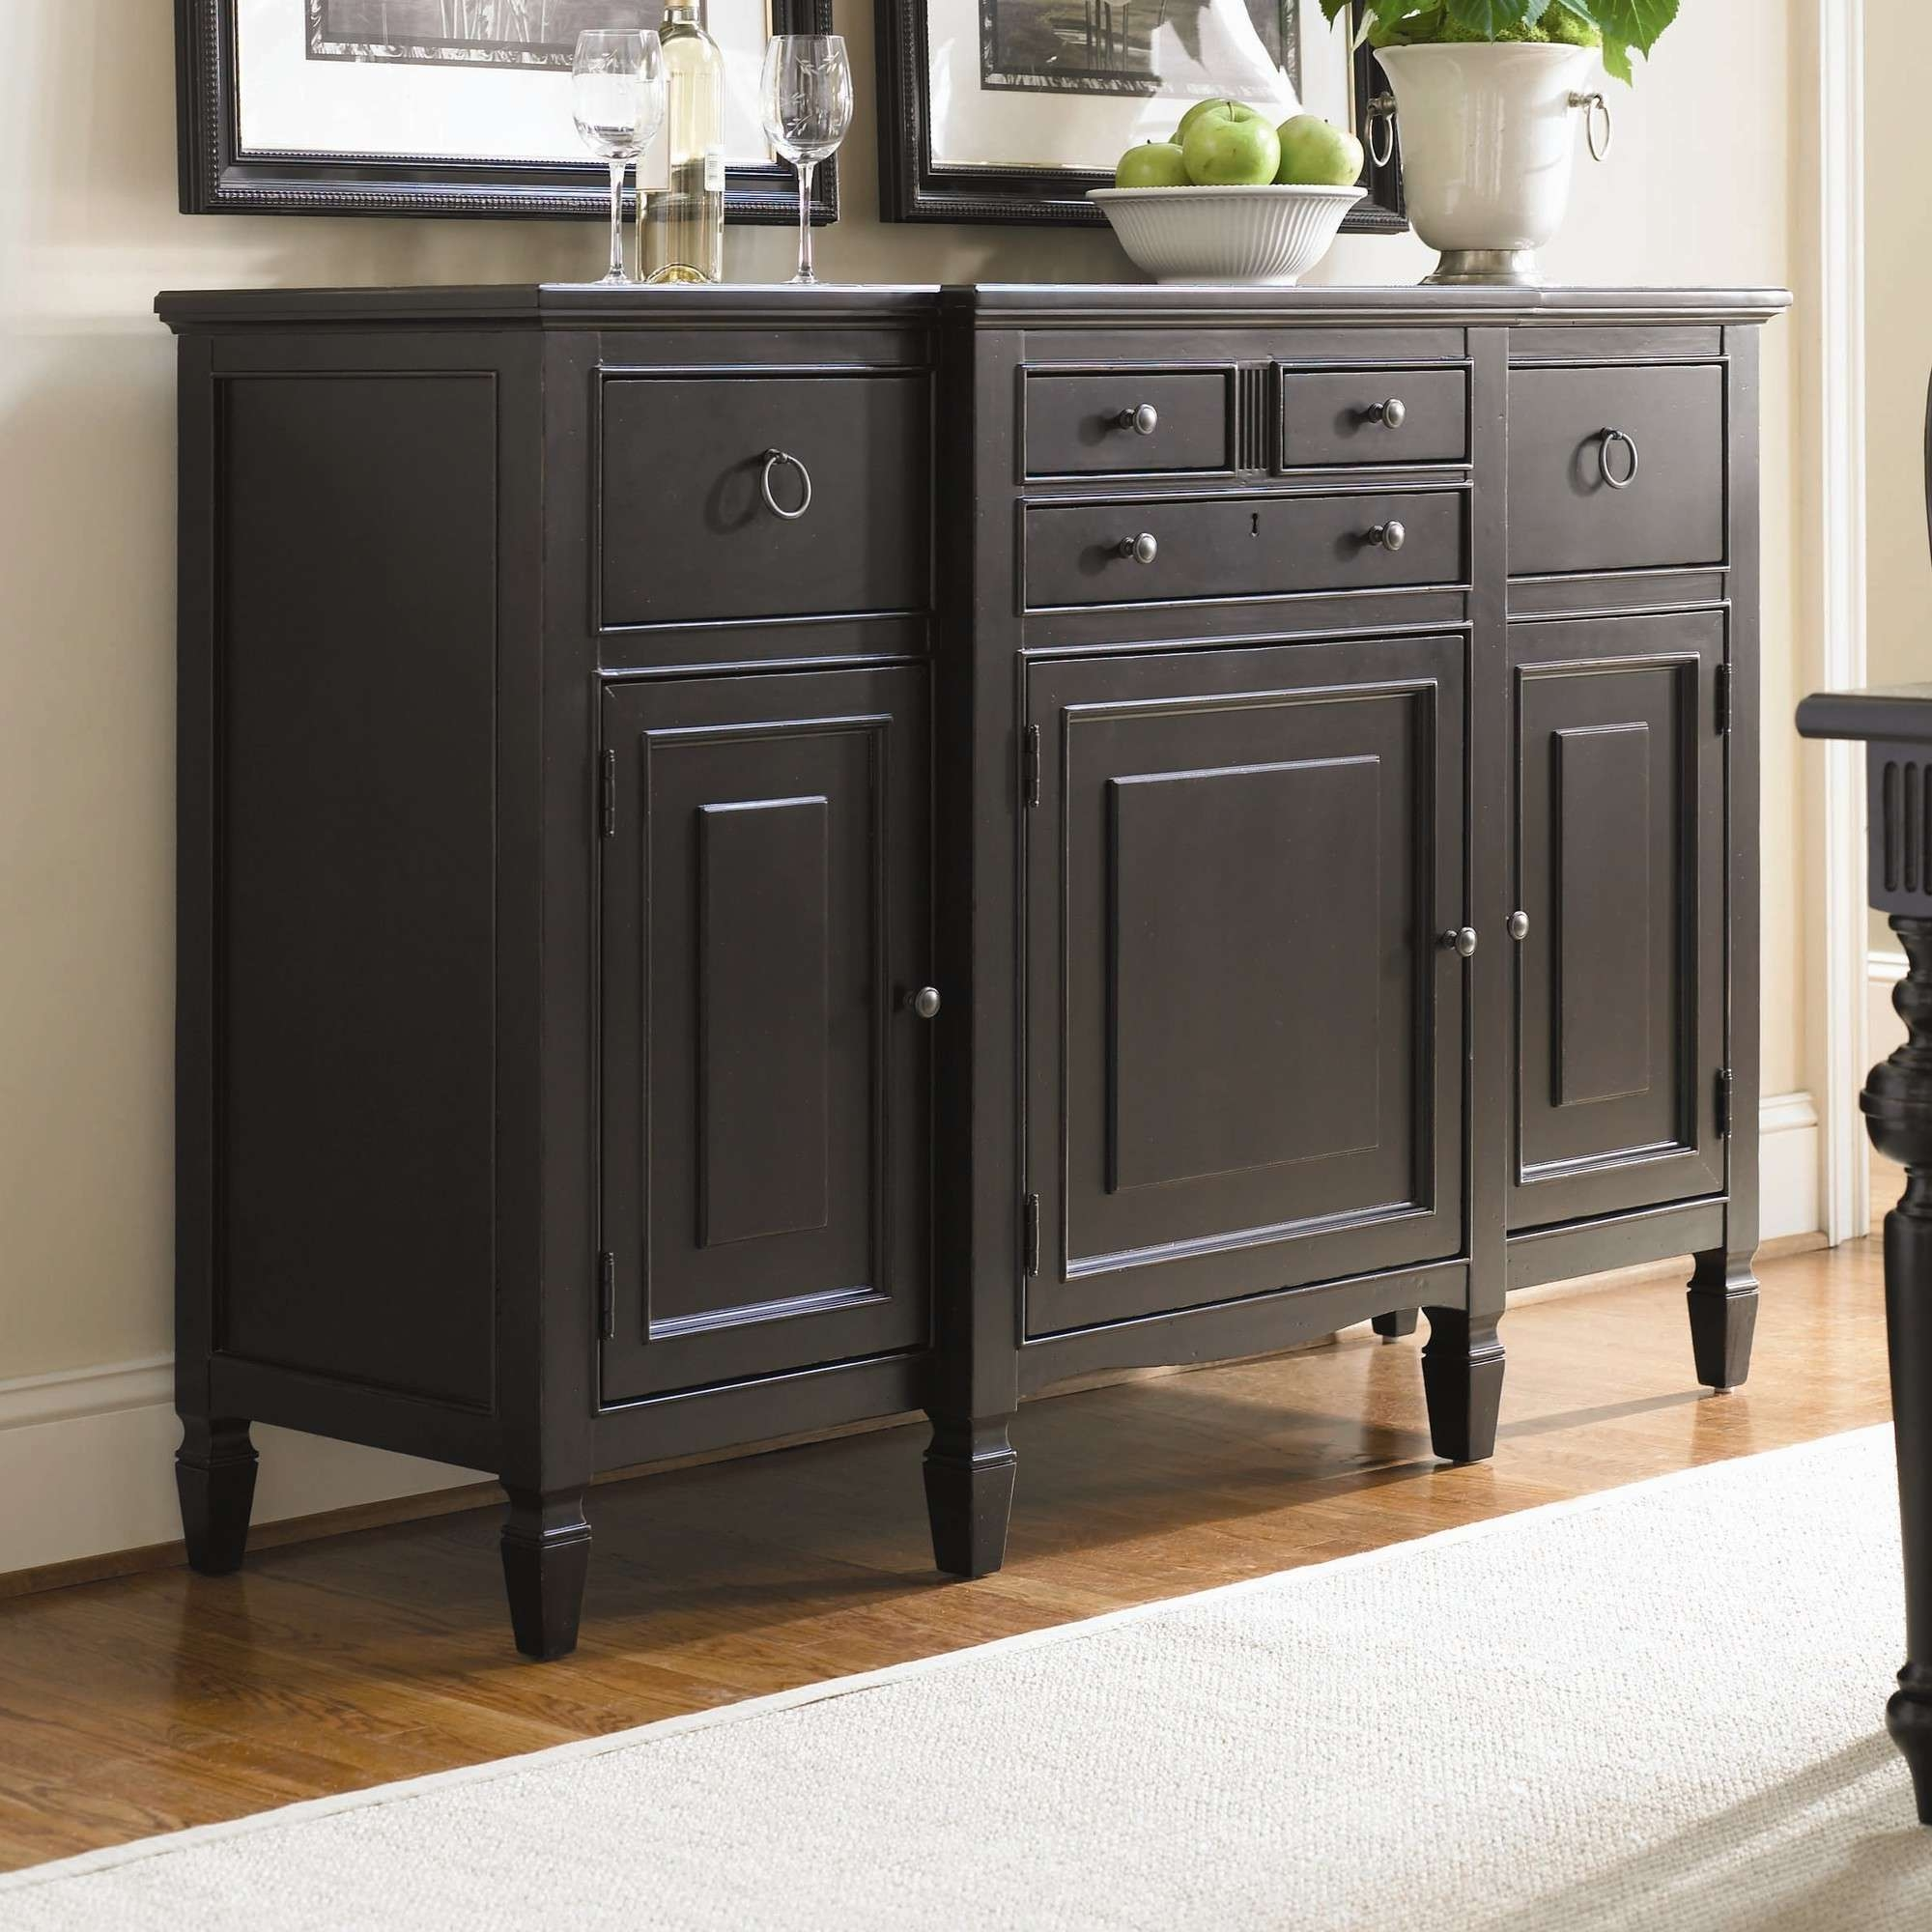 Rustic Sideboard Furniture Get Extra Dining Room Storage Trends Pertaining To Furniture Sideboards (View 11 of 20)